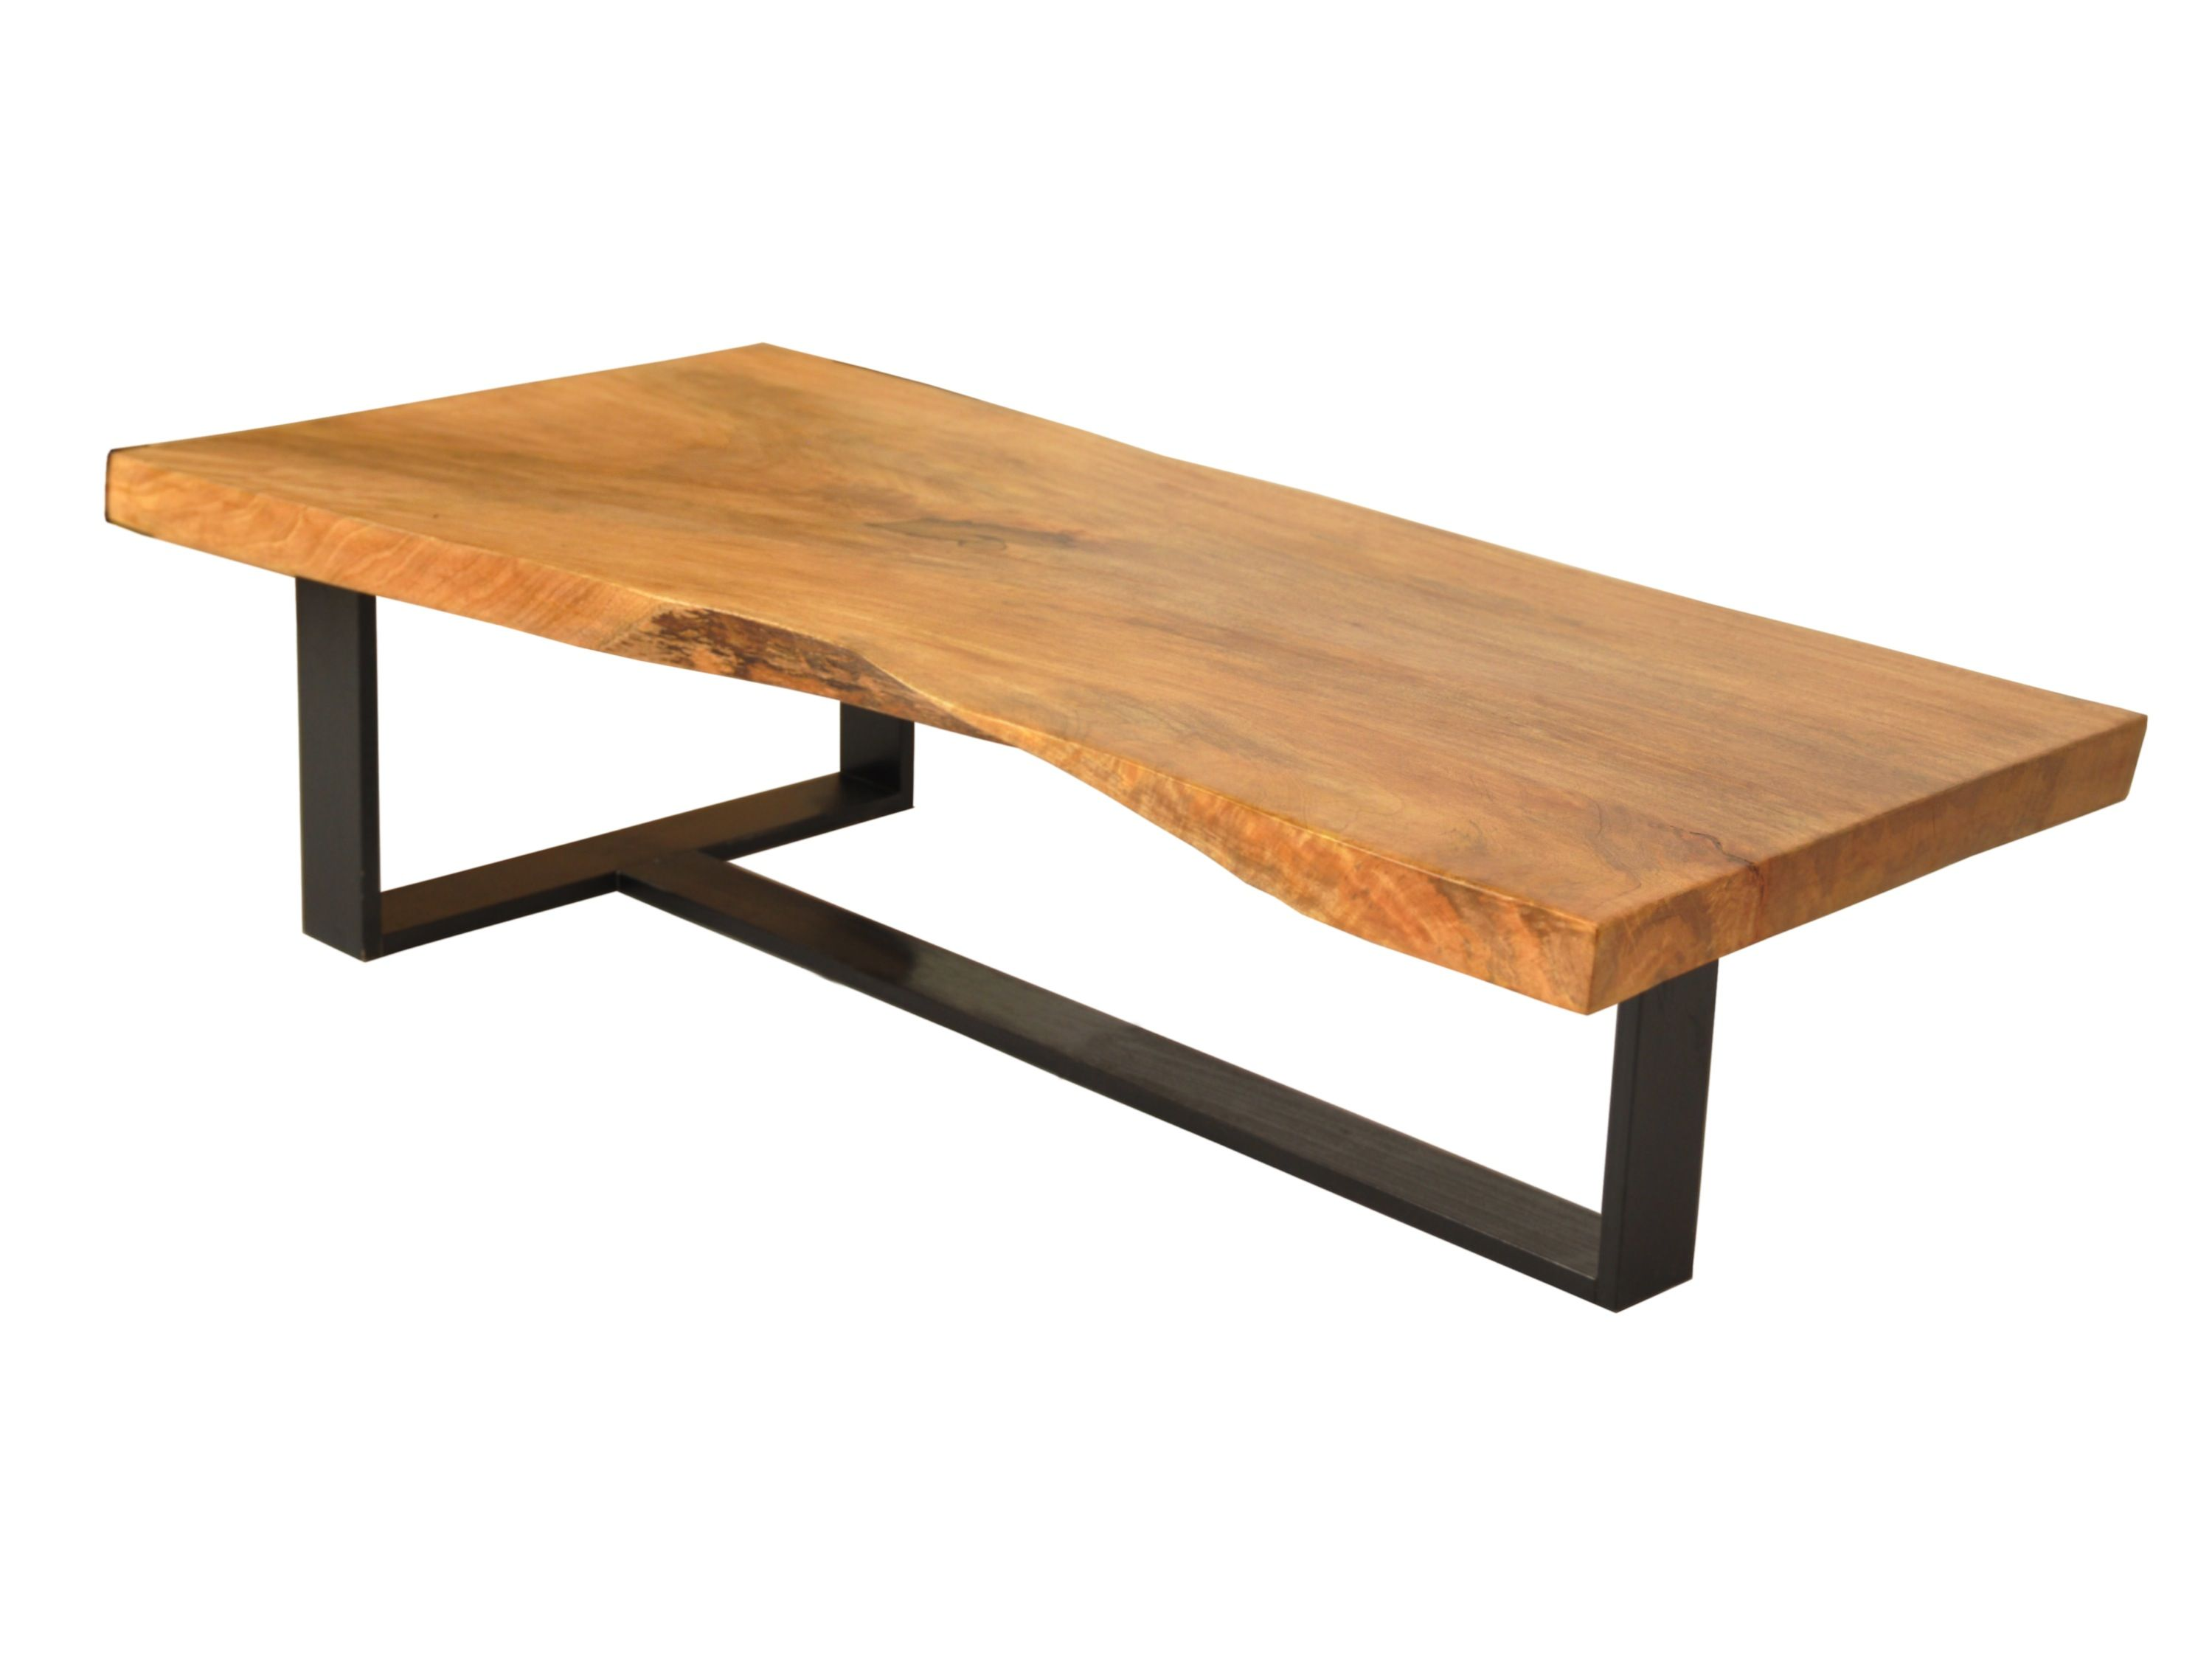 Single Slab Coffee Table   Blackened Metal Base Solid wood  live edge  coffee table made. Single Slab Coffee Table   Blackened Metal Base Solid wood  live